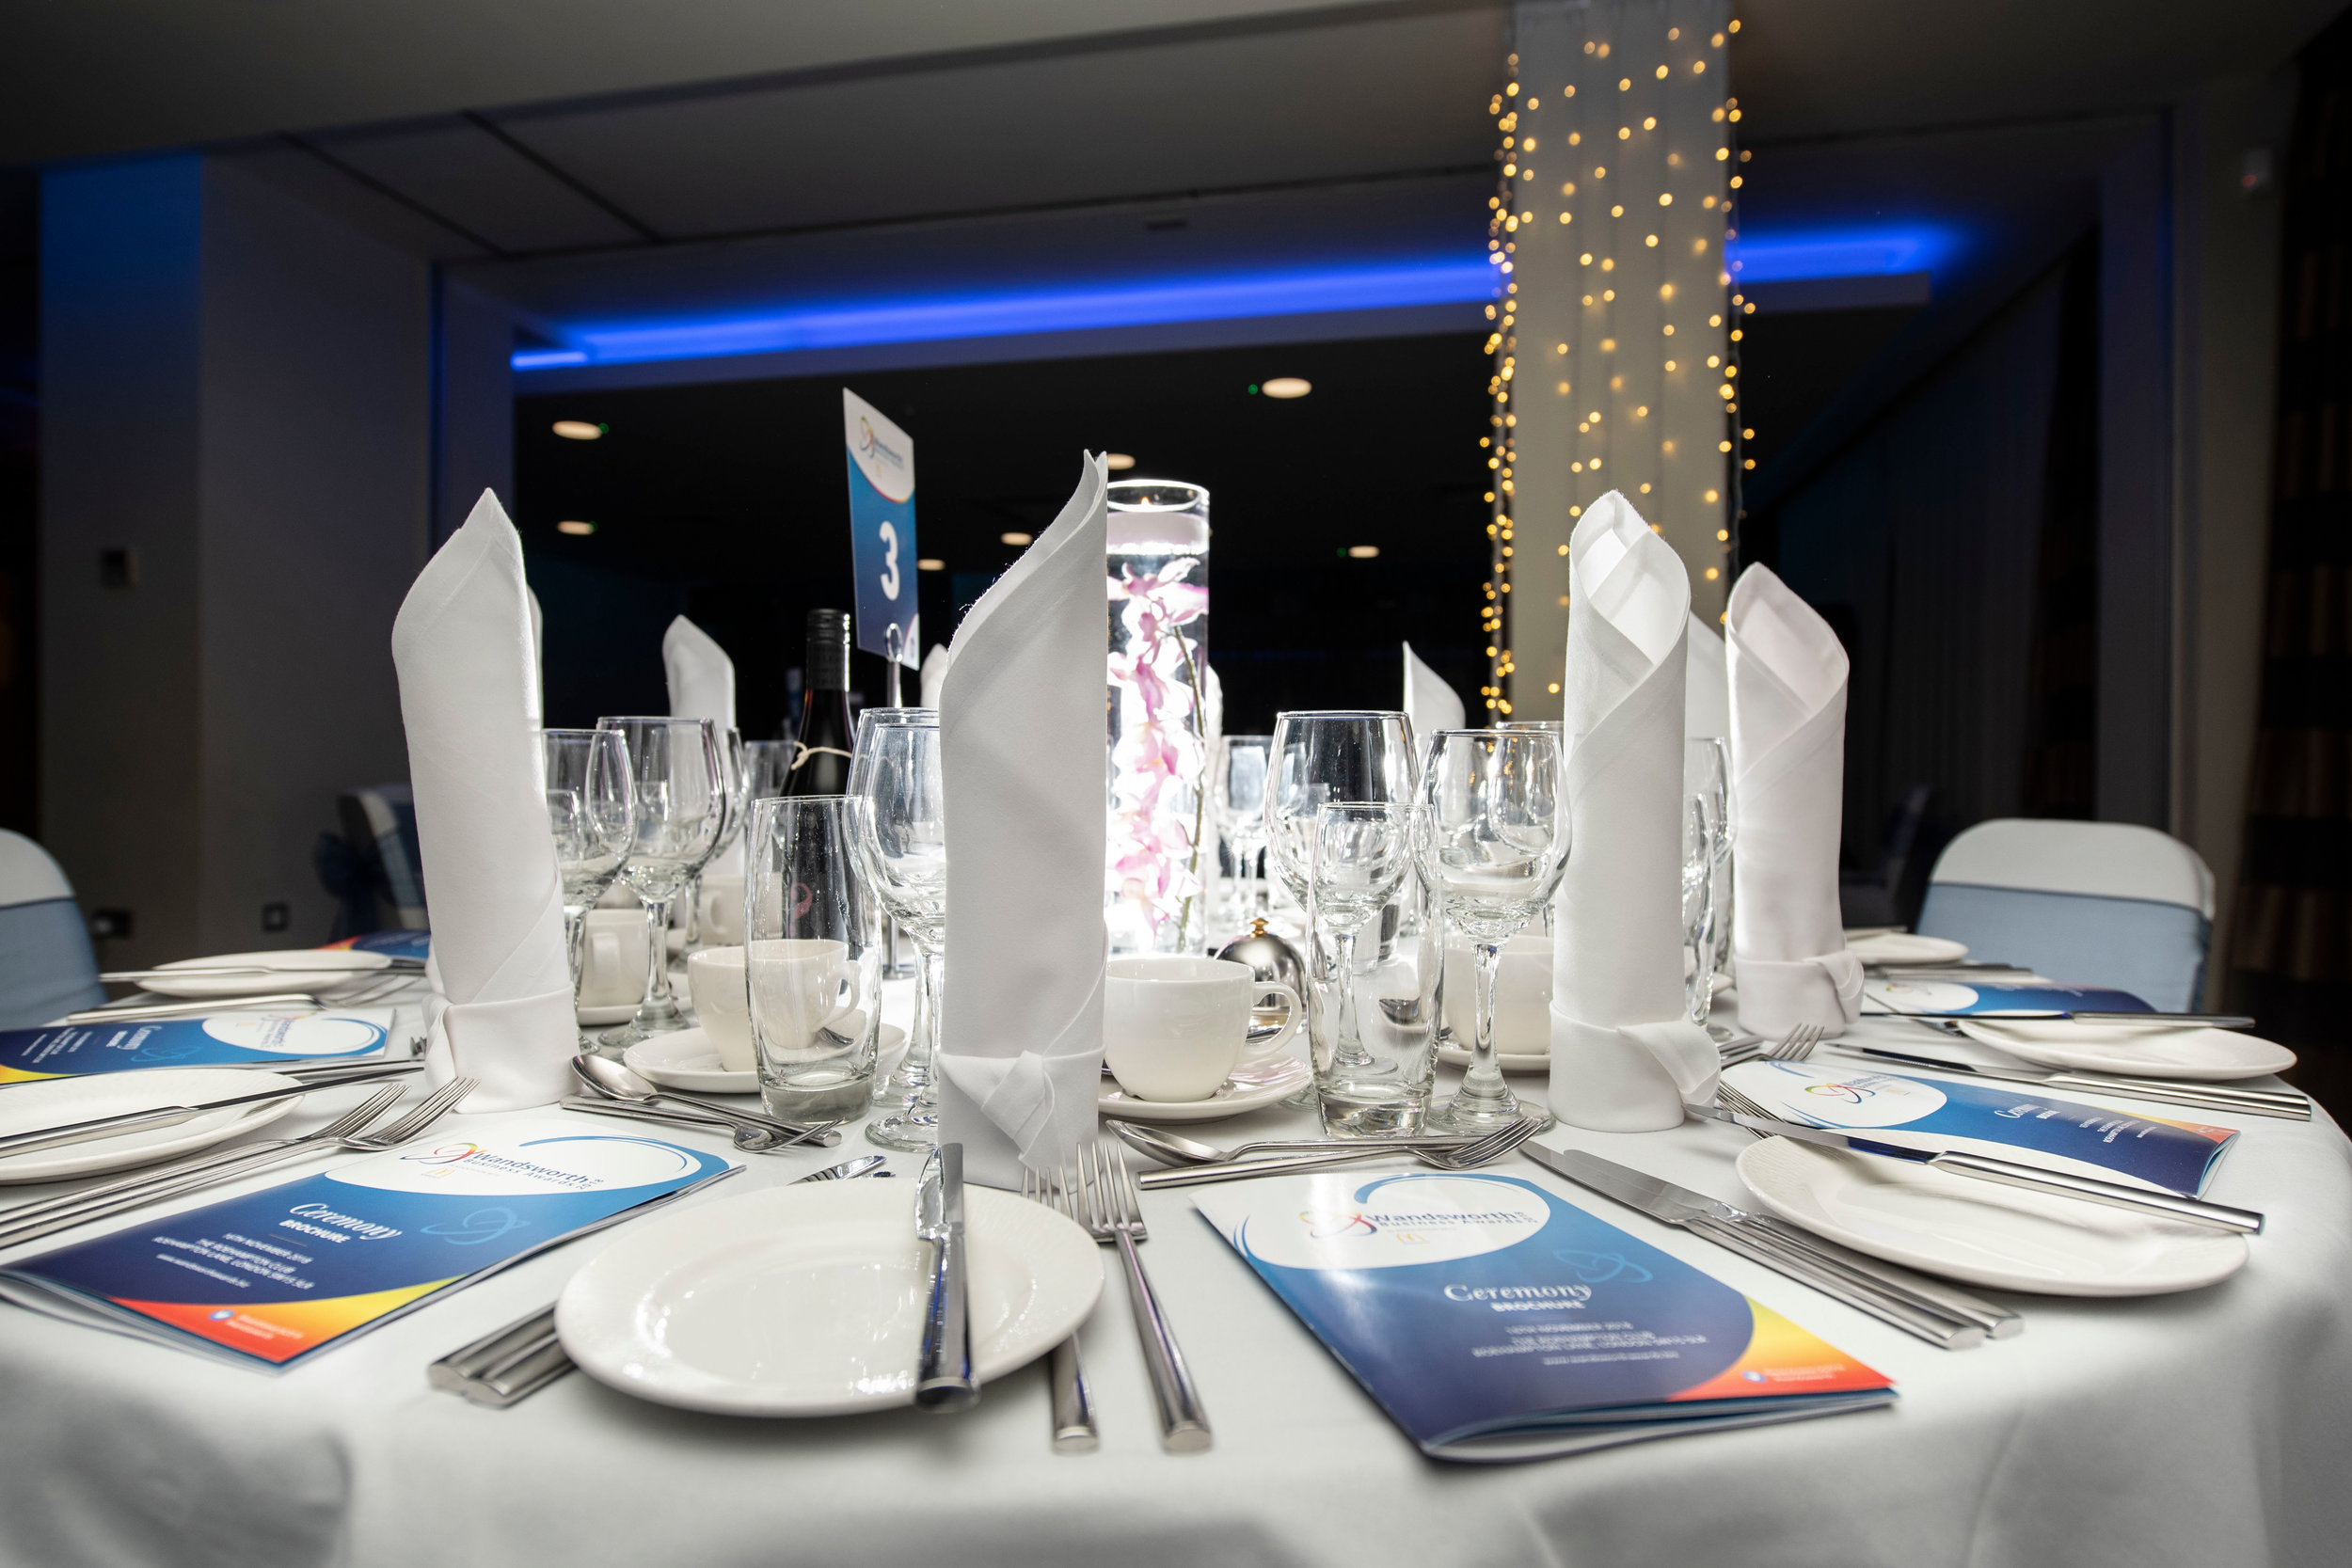 SPONSORS - The 2019 Business Awards has been generously supported by our sponsors - without whom these awards simply would not be viable. Please support our sponsors in the same way they have sponsored and supported our business awards.